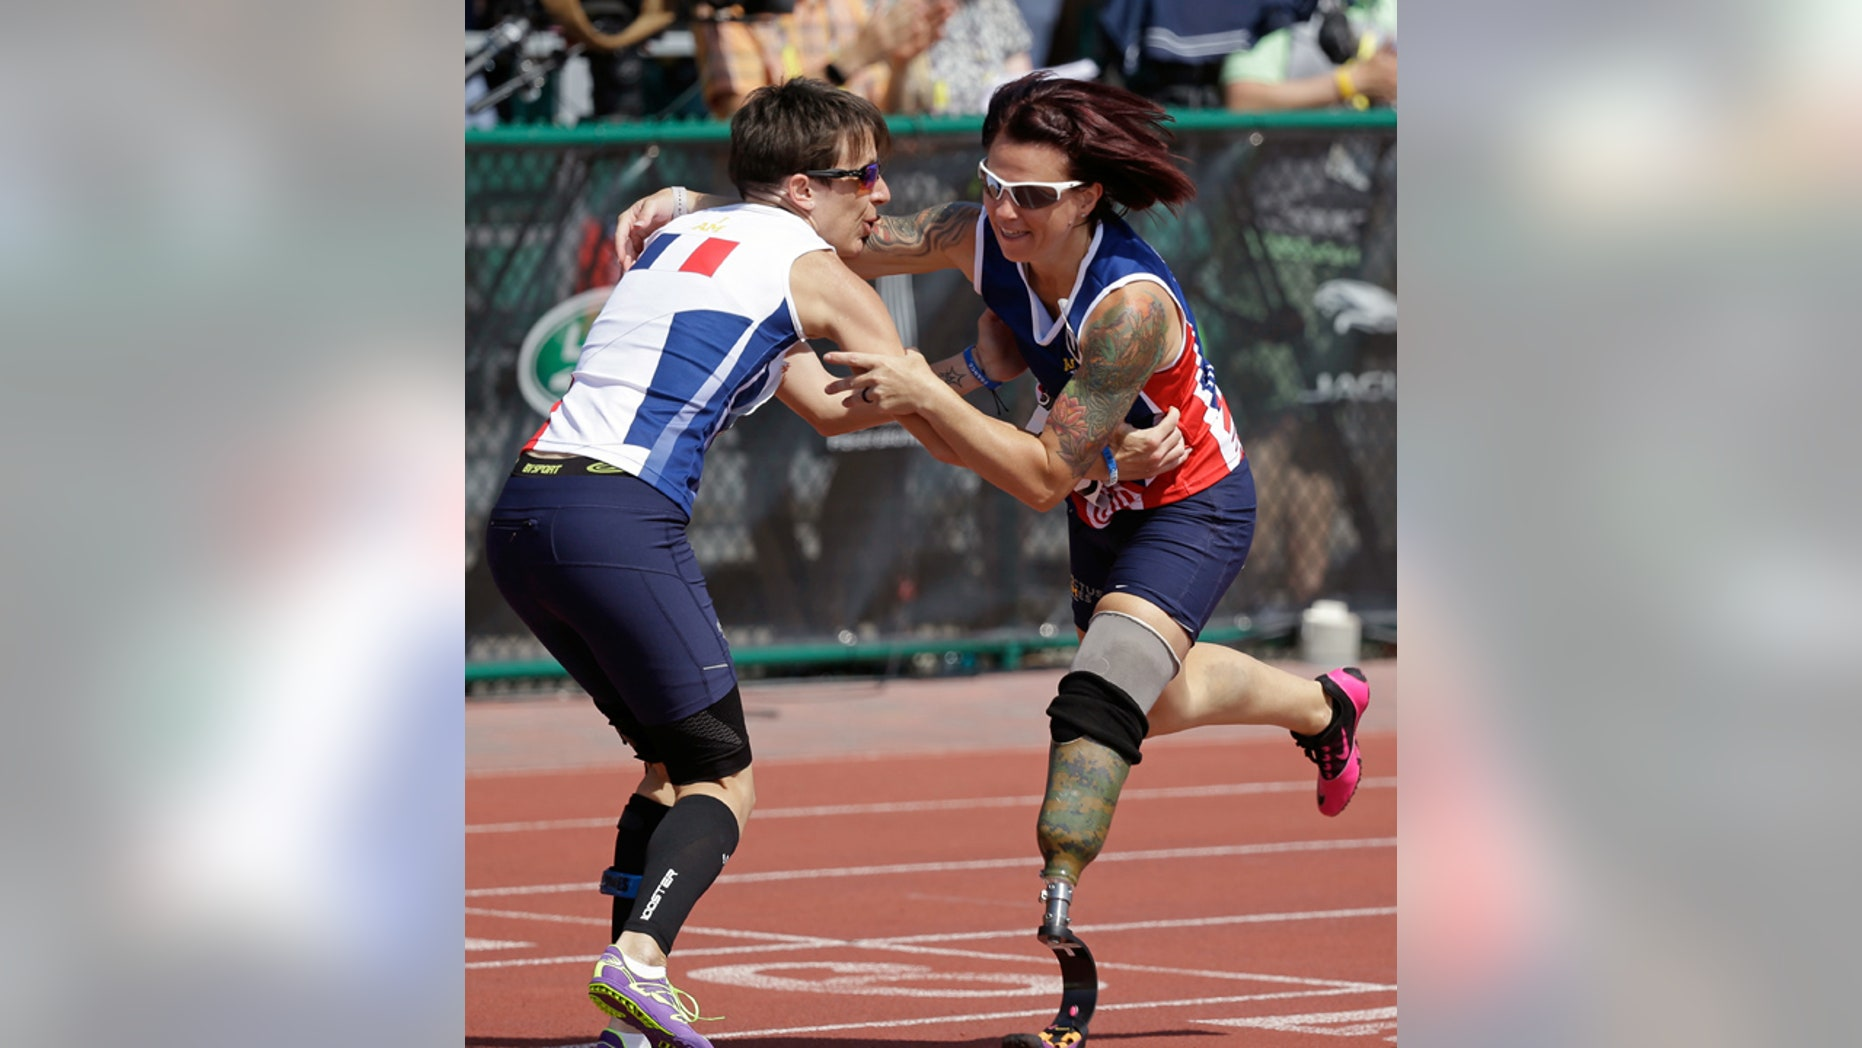 May 10, 2016: Marion Blot, left, of France, the winner of the women's 200 meter IT1 race, catches Sarah Rudder of the United States as she stumbles across the finish line at the Invictus Games in Kissimmee, Fla.